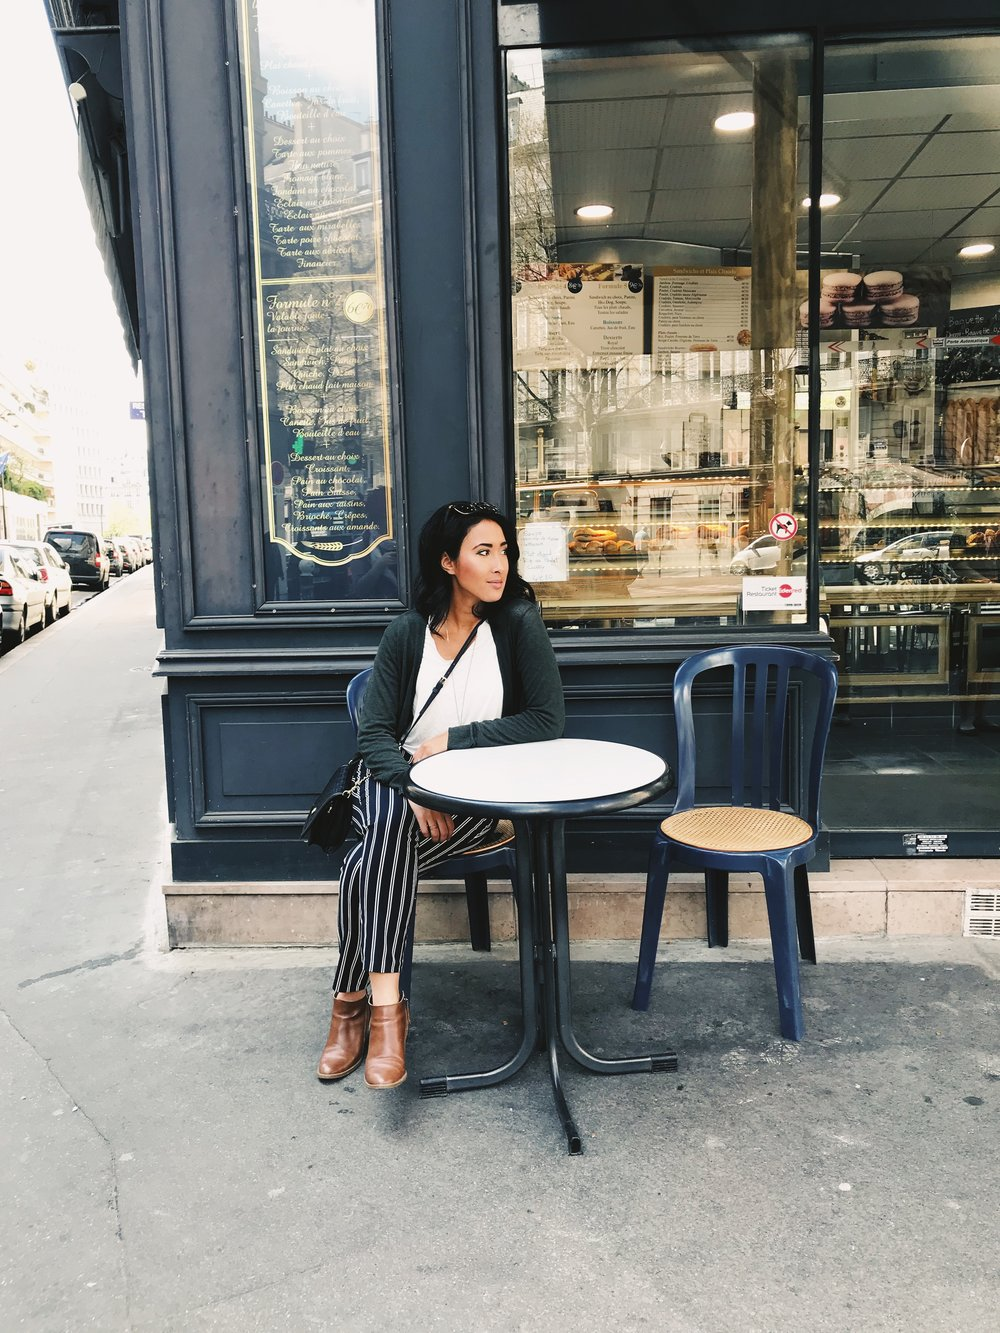 Paris Boulangerie photo.JPG